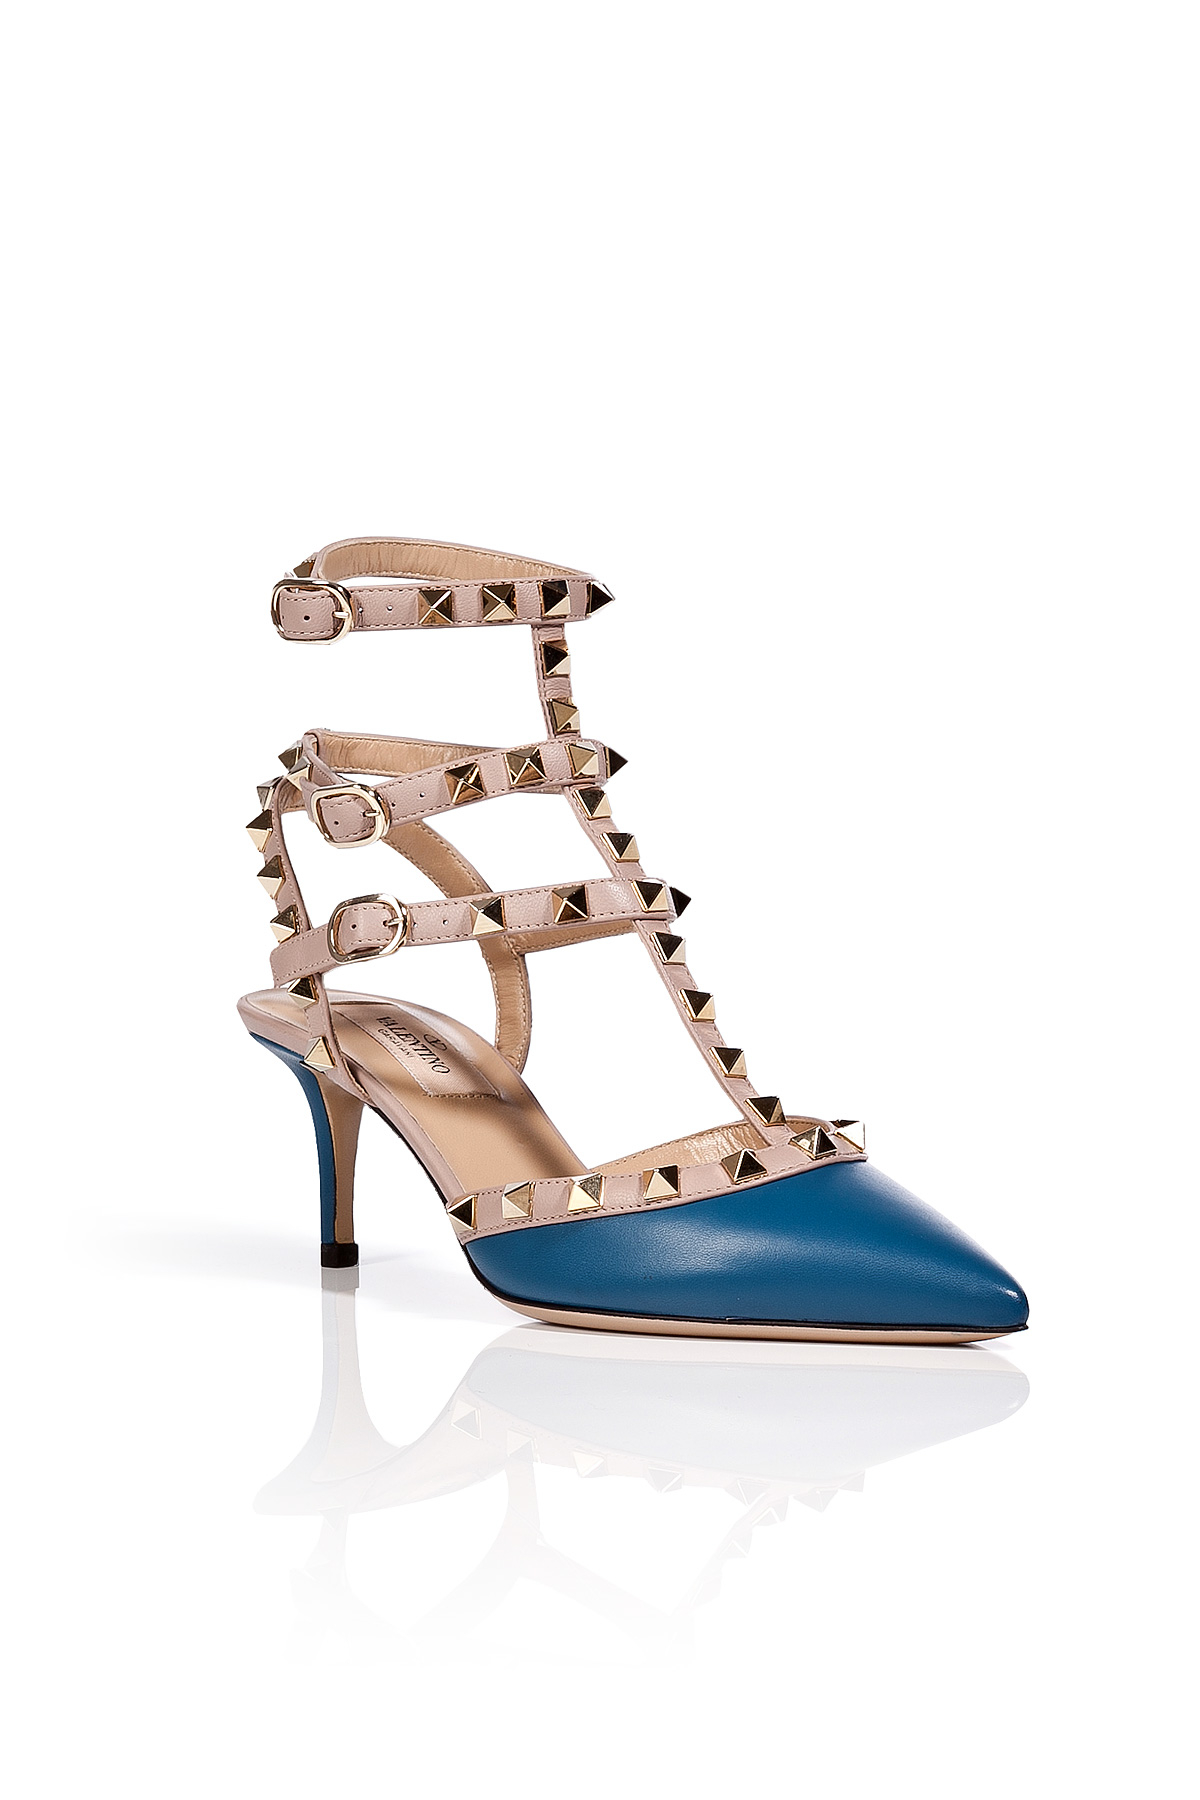 valentino leather rockstud kitten heels in blue in blue lyst. Black Bedroom Furniture Sets. Home Design Ideas